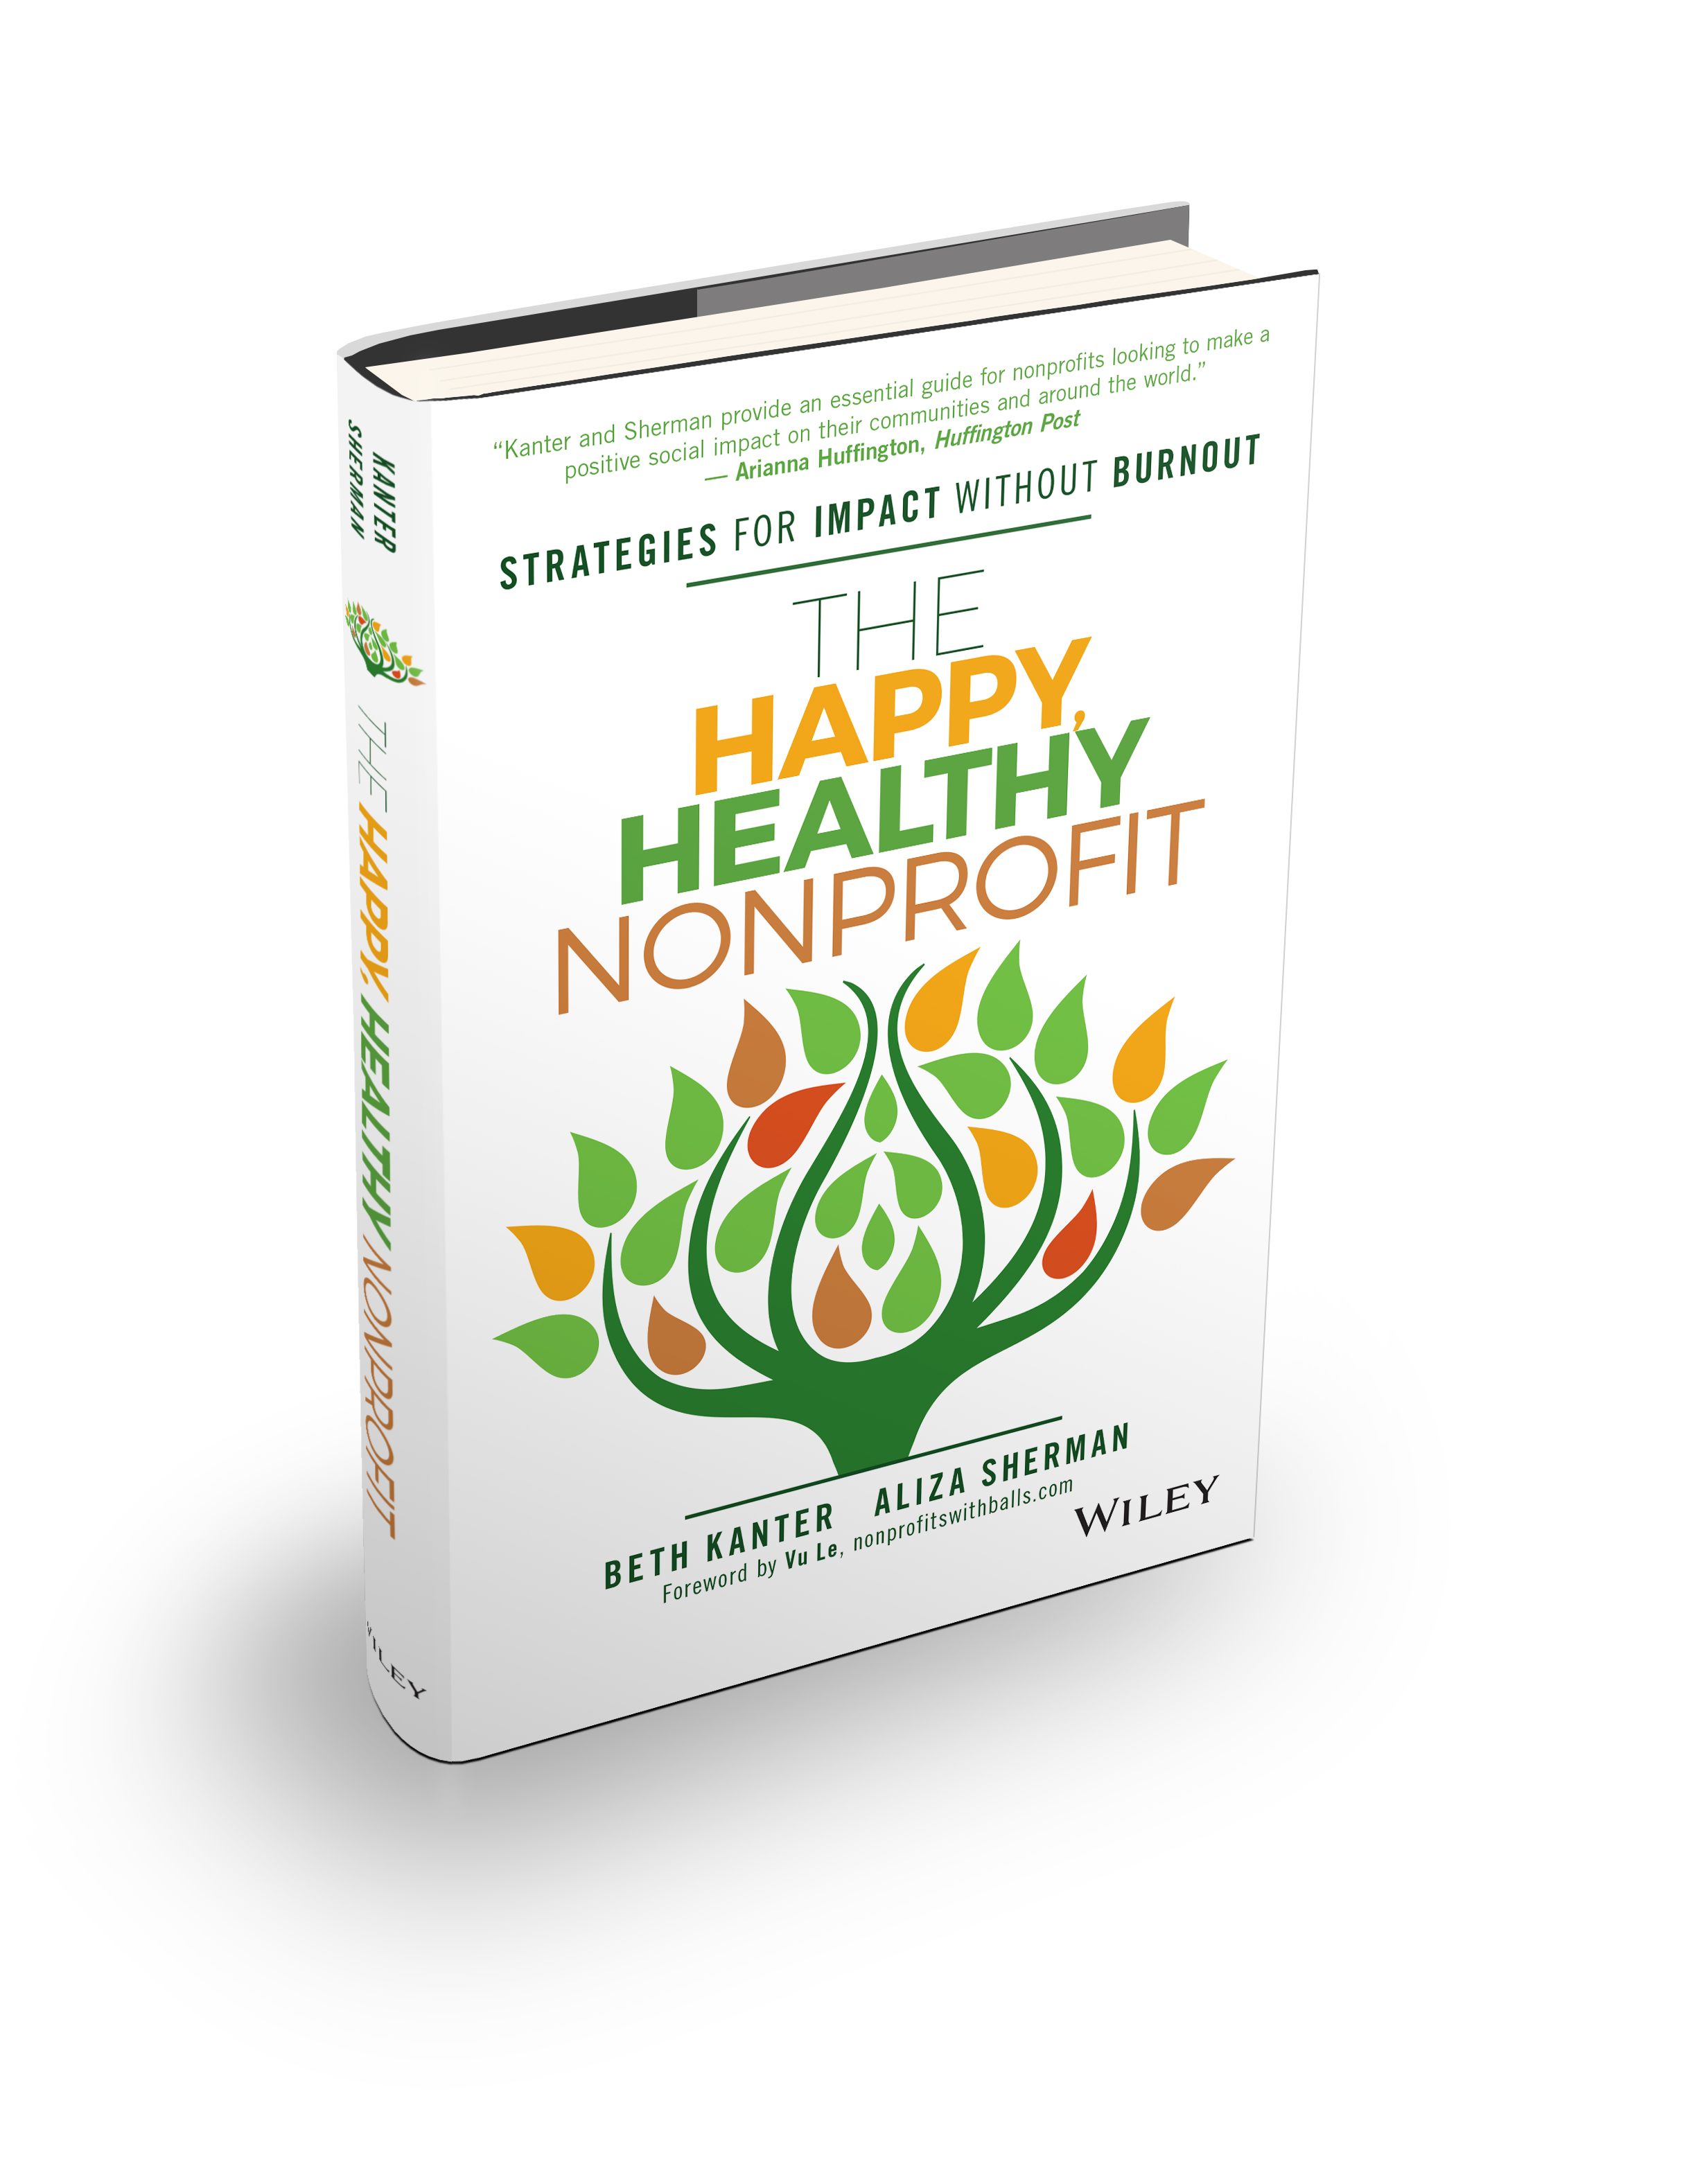 Happy Health Nonprofit Book